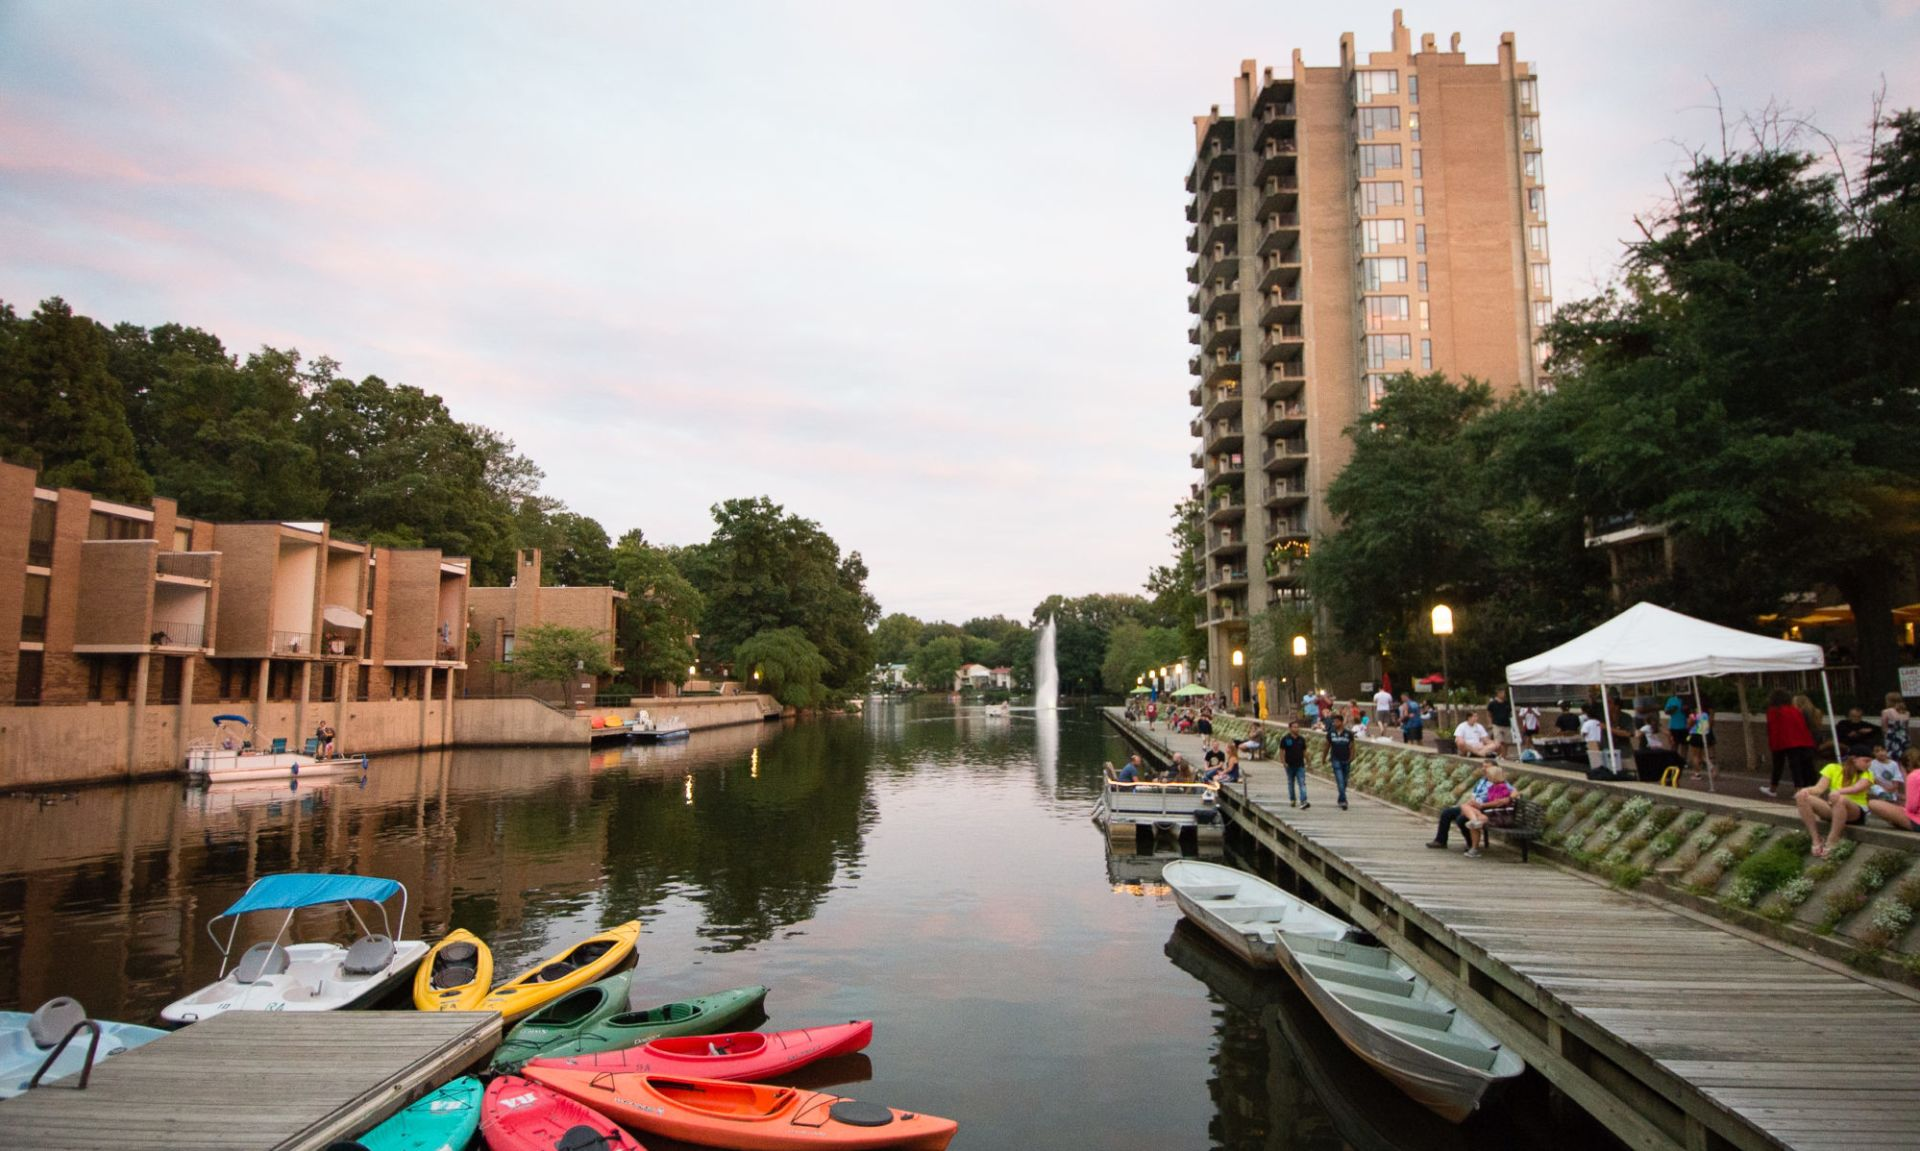 Lake Anne Plaza is the Heart of Reston Virginia